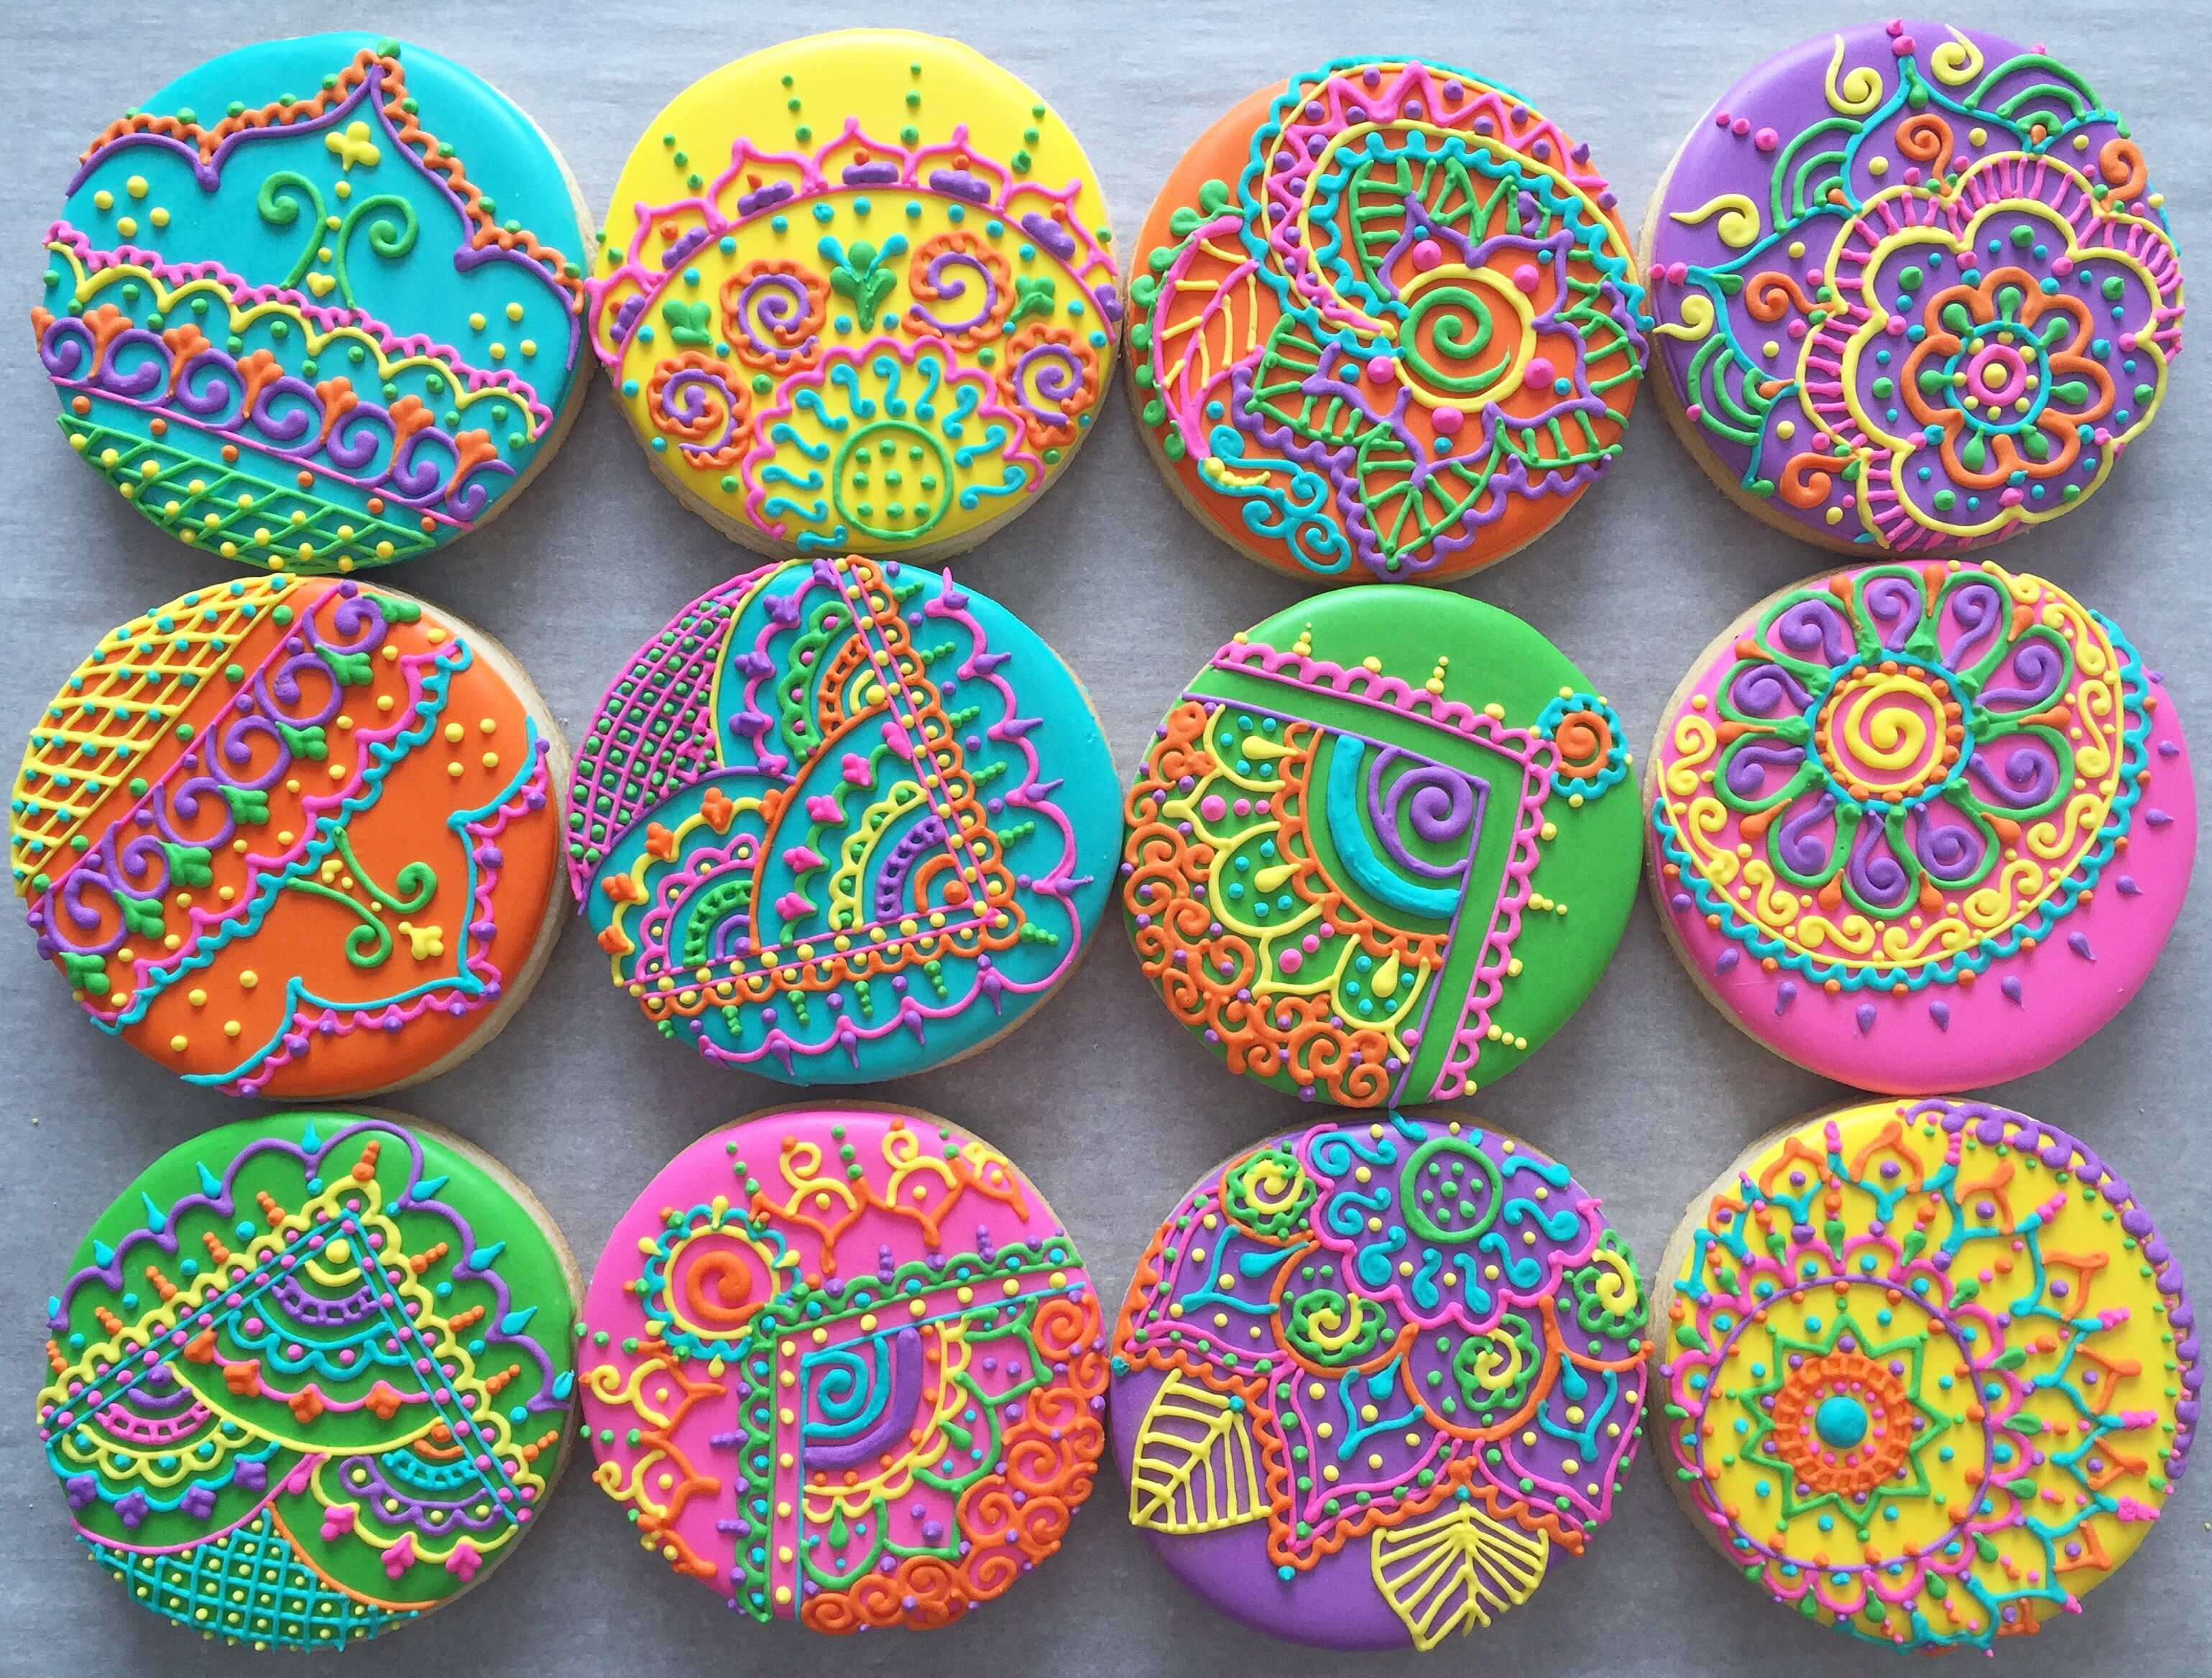 Colourful Mehndi Henna Sugar Cookies by Cookie Starts with C